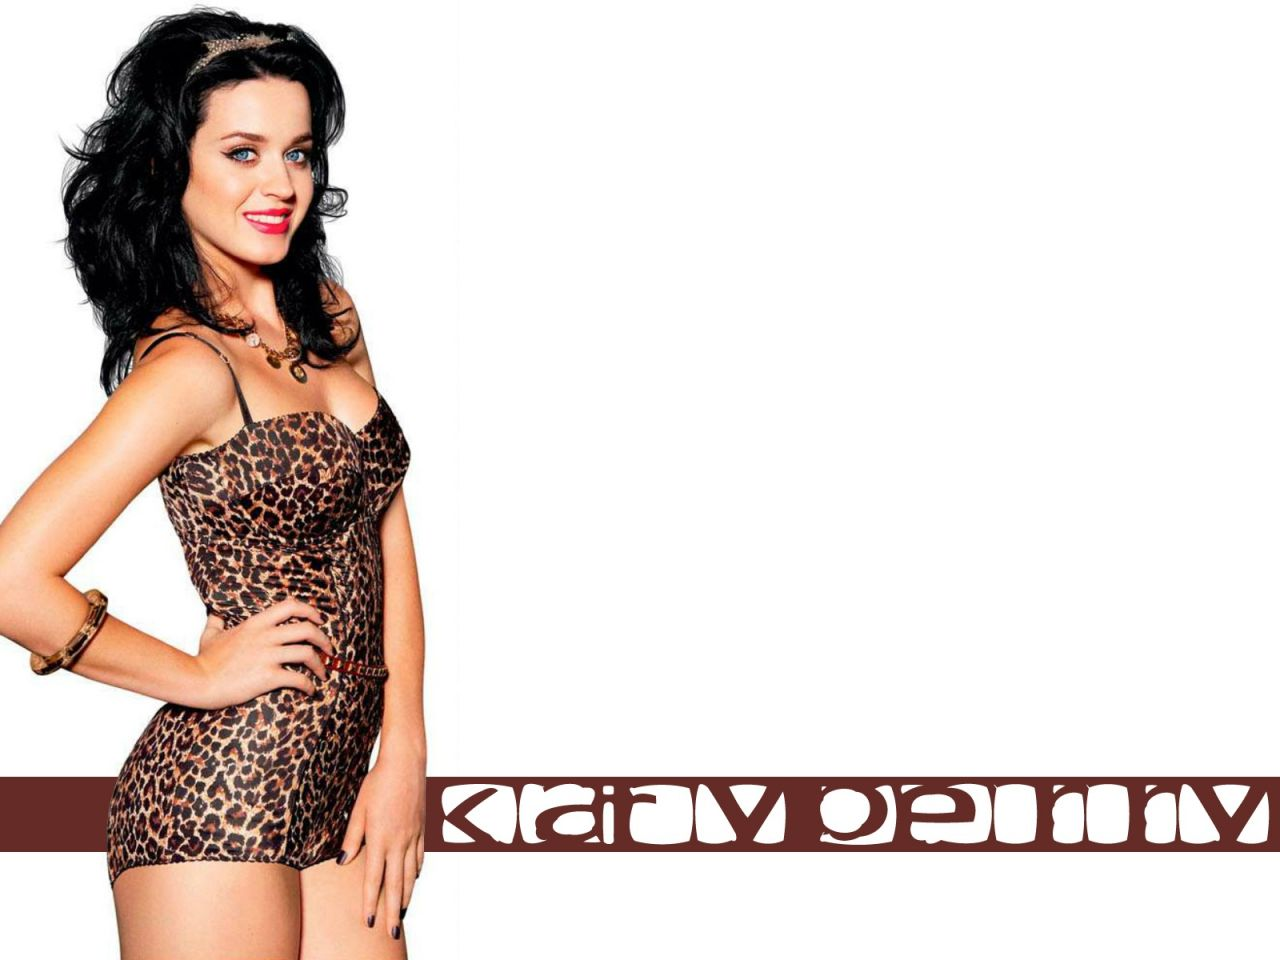 Katy Perry Hot Wallpapers-2012